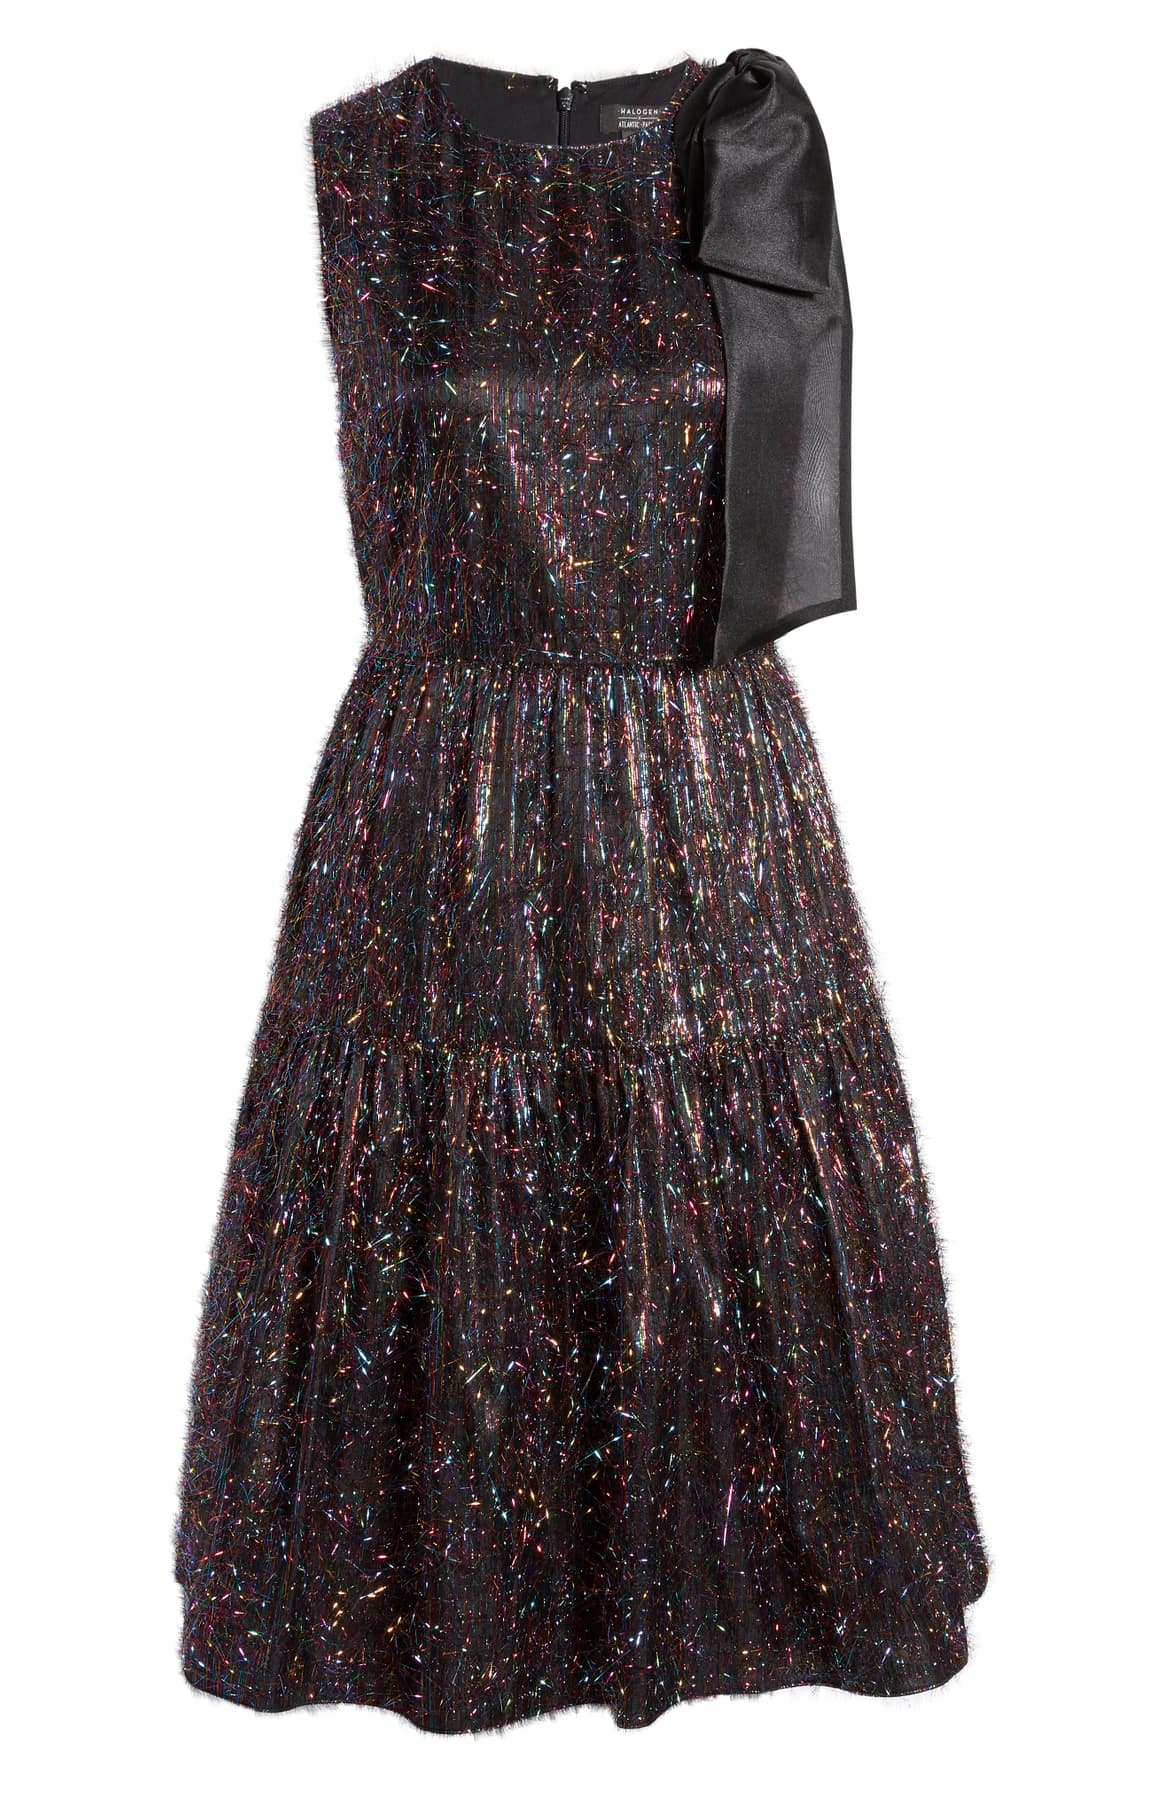 "<a  href=""https://shop.nordstrom.com/s/halogen-x-atlantic-pacific-bow-tinsel-a-line-dress-nordstrom-exclusive/5356614/full?origin=keywordsearch-personalizedsort&breadcrumb=Home%2FAll%20Results&color=rainbow%20tinsel"" target=""_blank"" title=""https://shop.nordstrom.com/s/halogen-x-atlantic-pacific-bow-tinsel-a-line-dress-nordstrom-exclusive/5356614/full?origin=keywordsearch-personalizedsort&breadcrumb=Home%2FAll%20Results&color=rainbow%20tinsel"">Halogen x Atlantic Pacific Bow Tinsel A-Line Dress - $149</a>. From cozy to gold hued to tailored, Nordstrom has the hottest trends for getting glam this holiday season! (Credit: Nordstrom)"